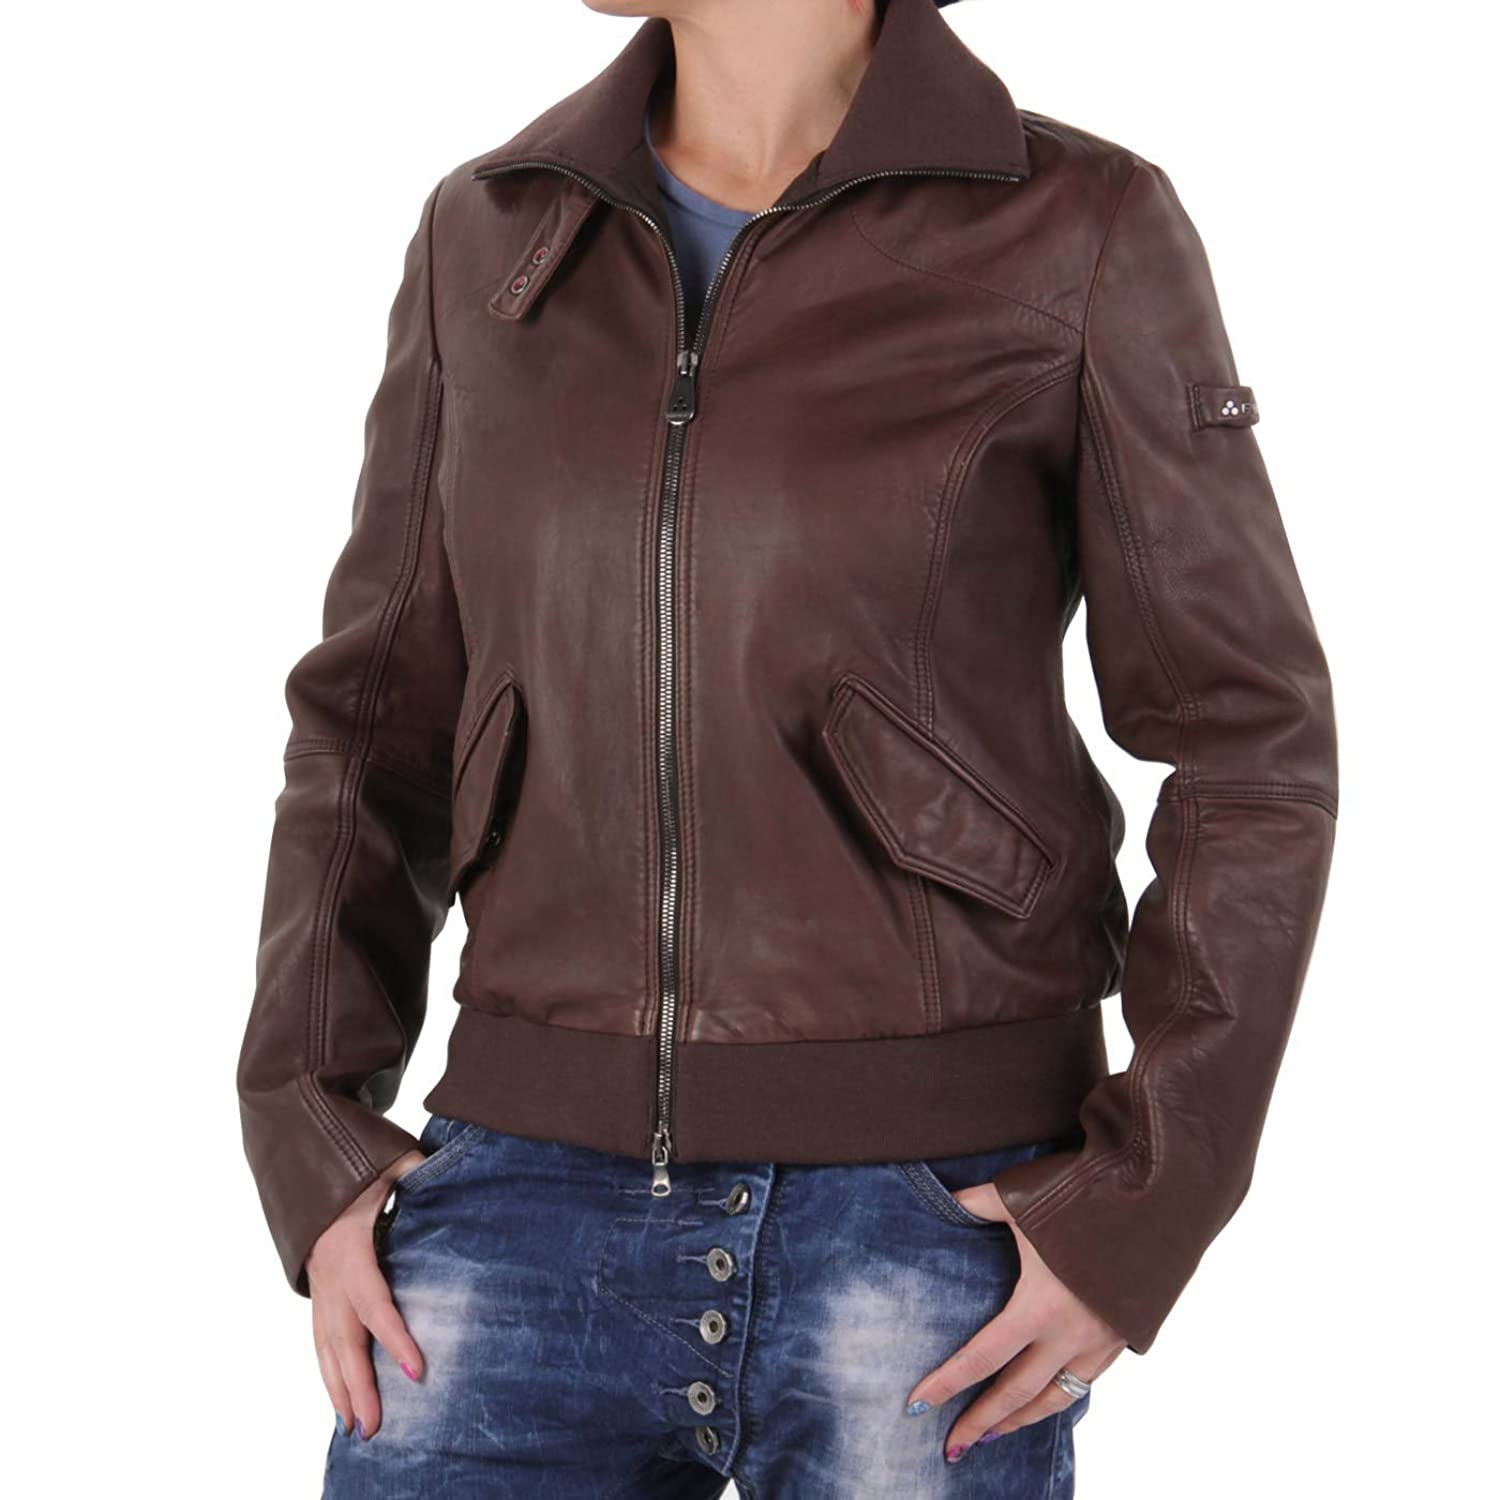 PEUTEREY Damen Winter Lederjacke Stephany Brown PED0700 2. Wahl kaufen